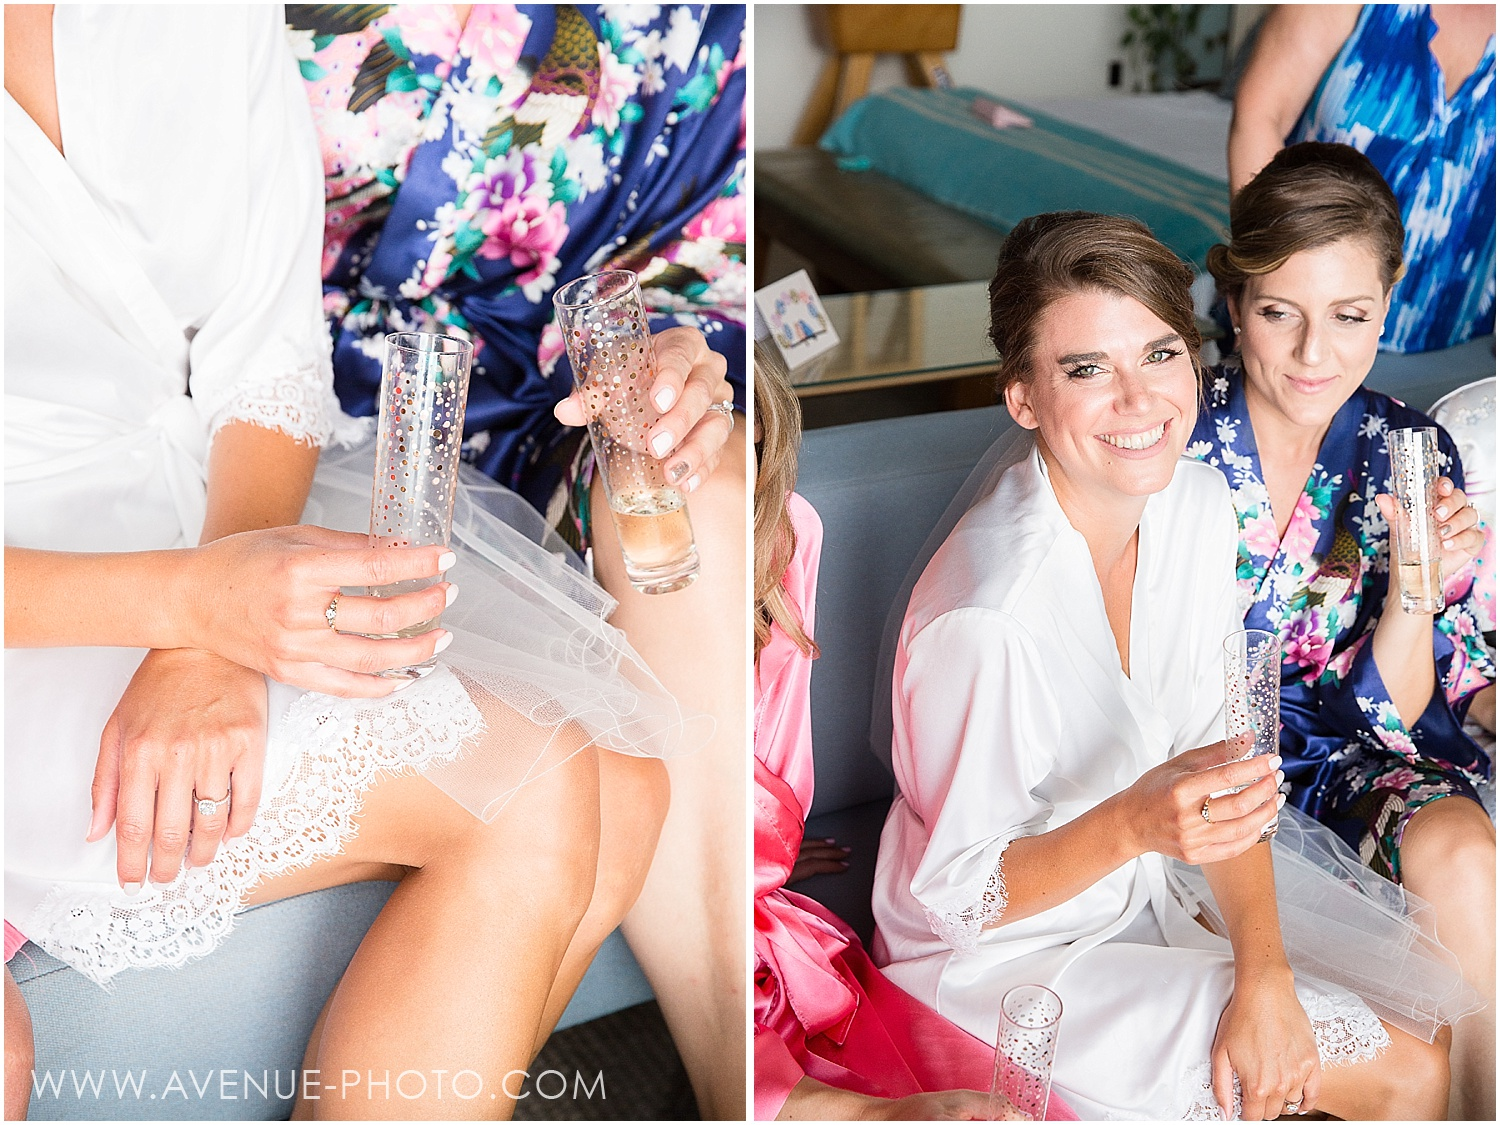 Drake Devonshire Wedding, Prince Edward County Wedding, PEC Wedding, Avenue Photo